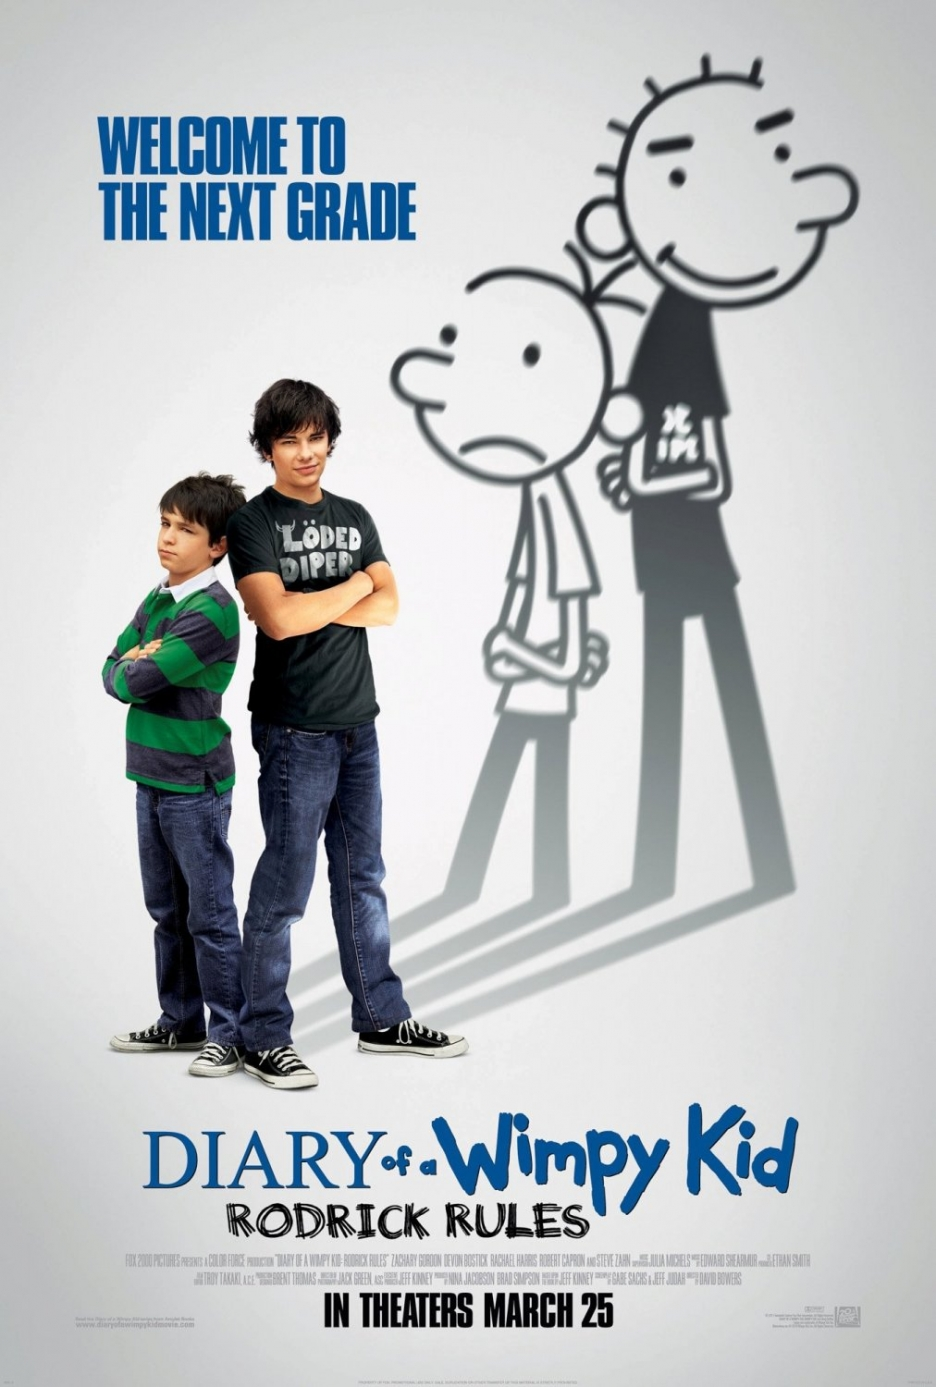 Lord Popcorn: Movie Synopsis - Diary of a Wimpy Kid ...